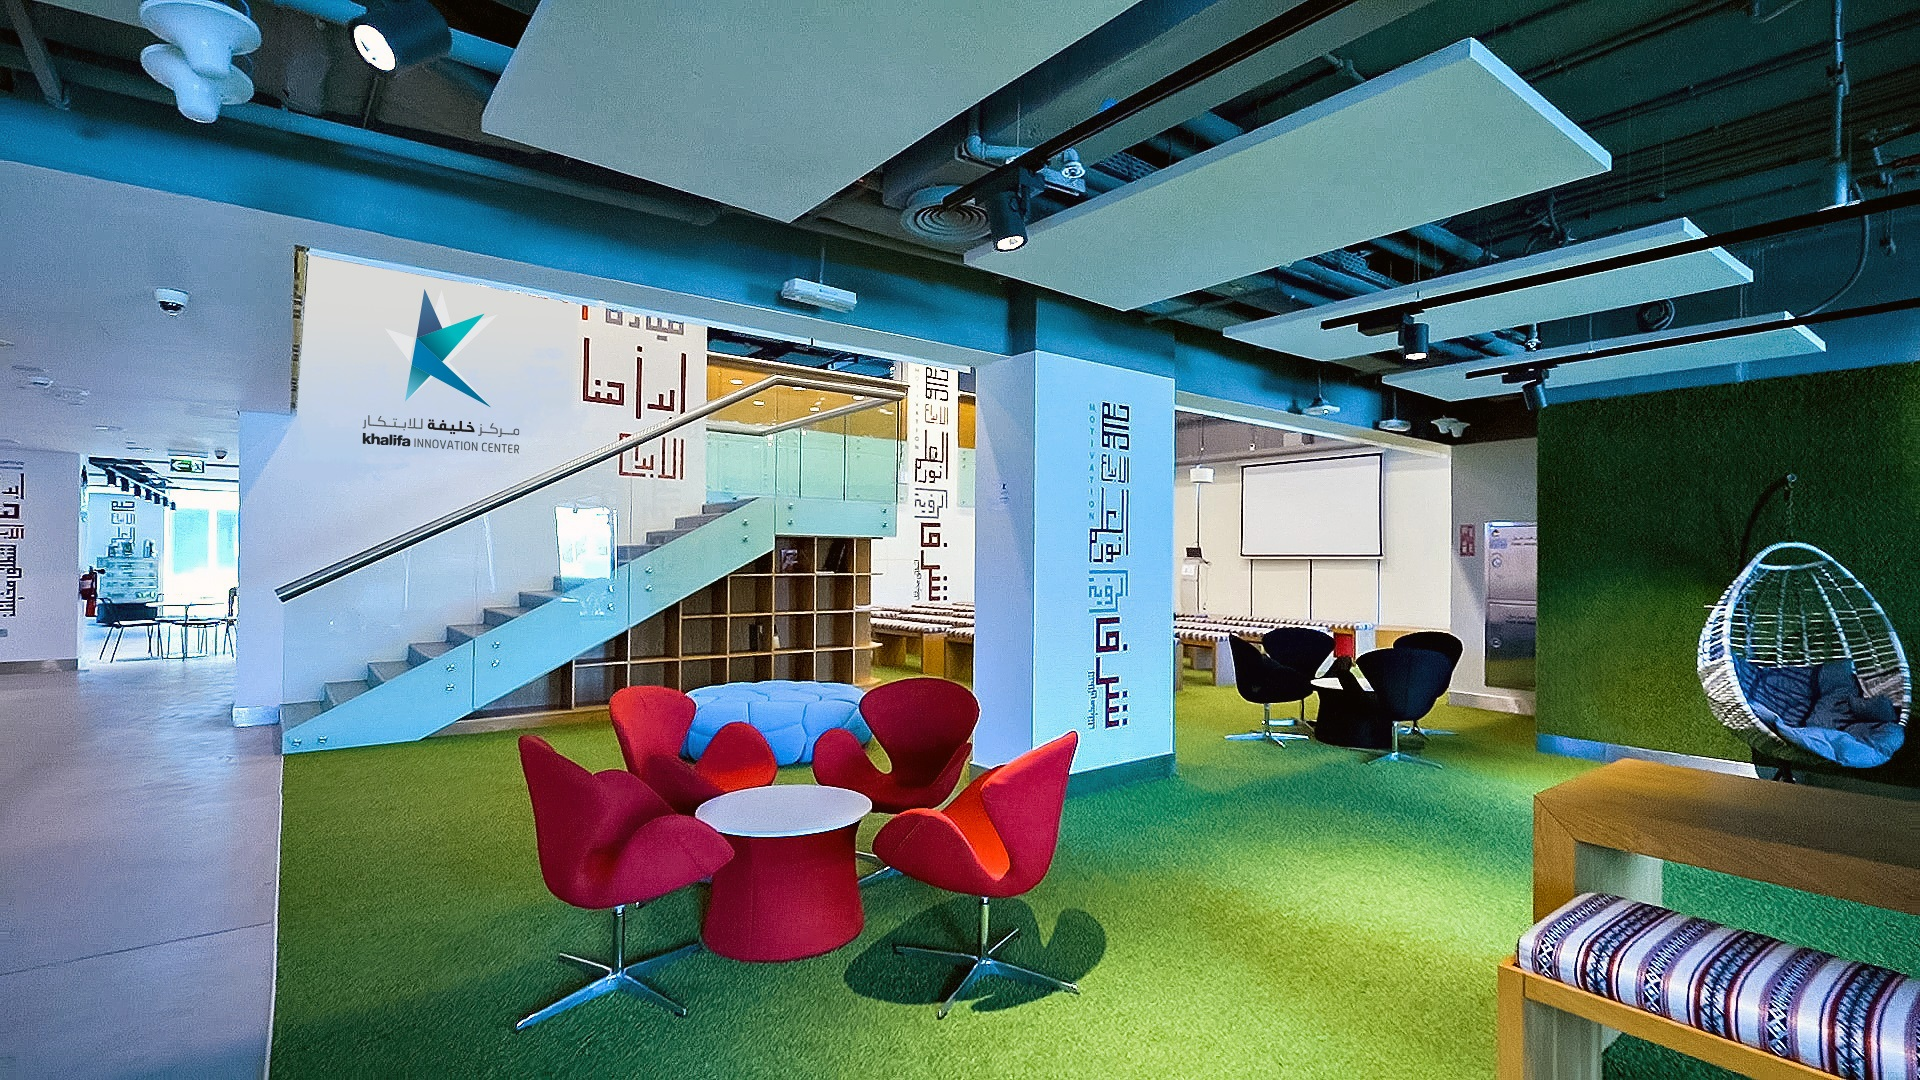 The Khalifa Innovation Centre offers multi-stage support to entrepreneurs